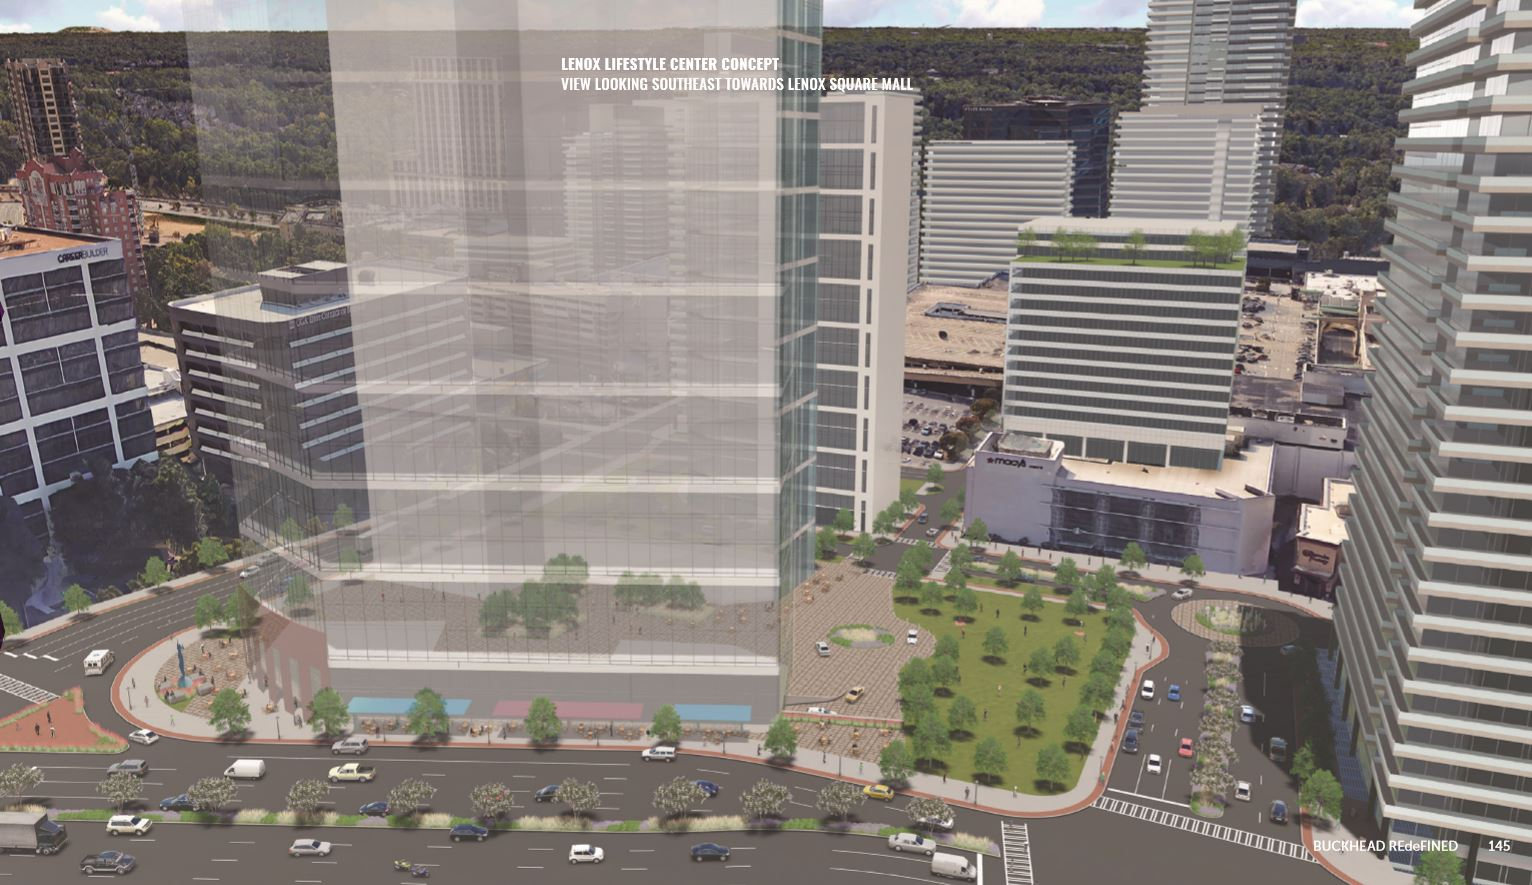 A rudimentary rendering of office towers standing in front of lenox square.